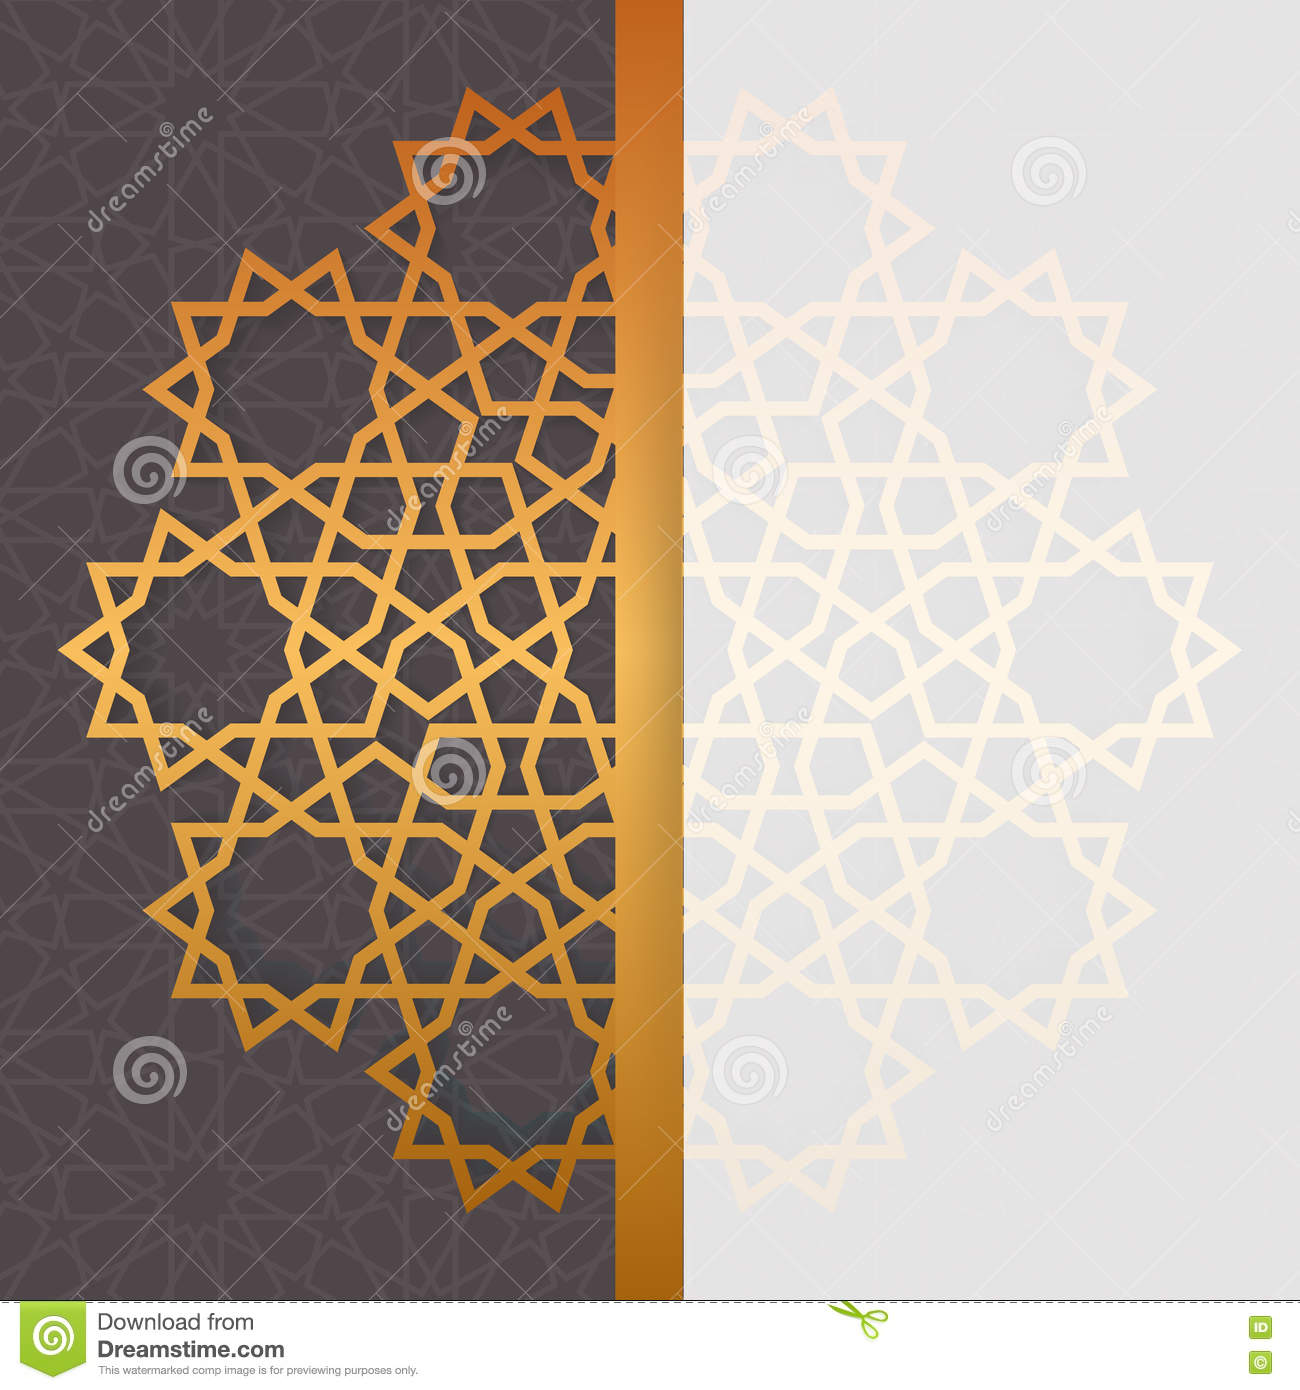 Islamic arabian style background stock vector illustration 72287371 geometric islamic pattern muslim background in arabian style royalty free stock photography alramifo Choice Image